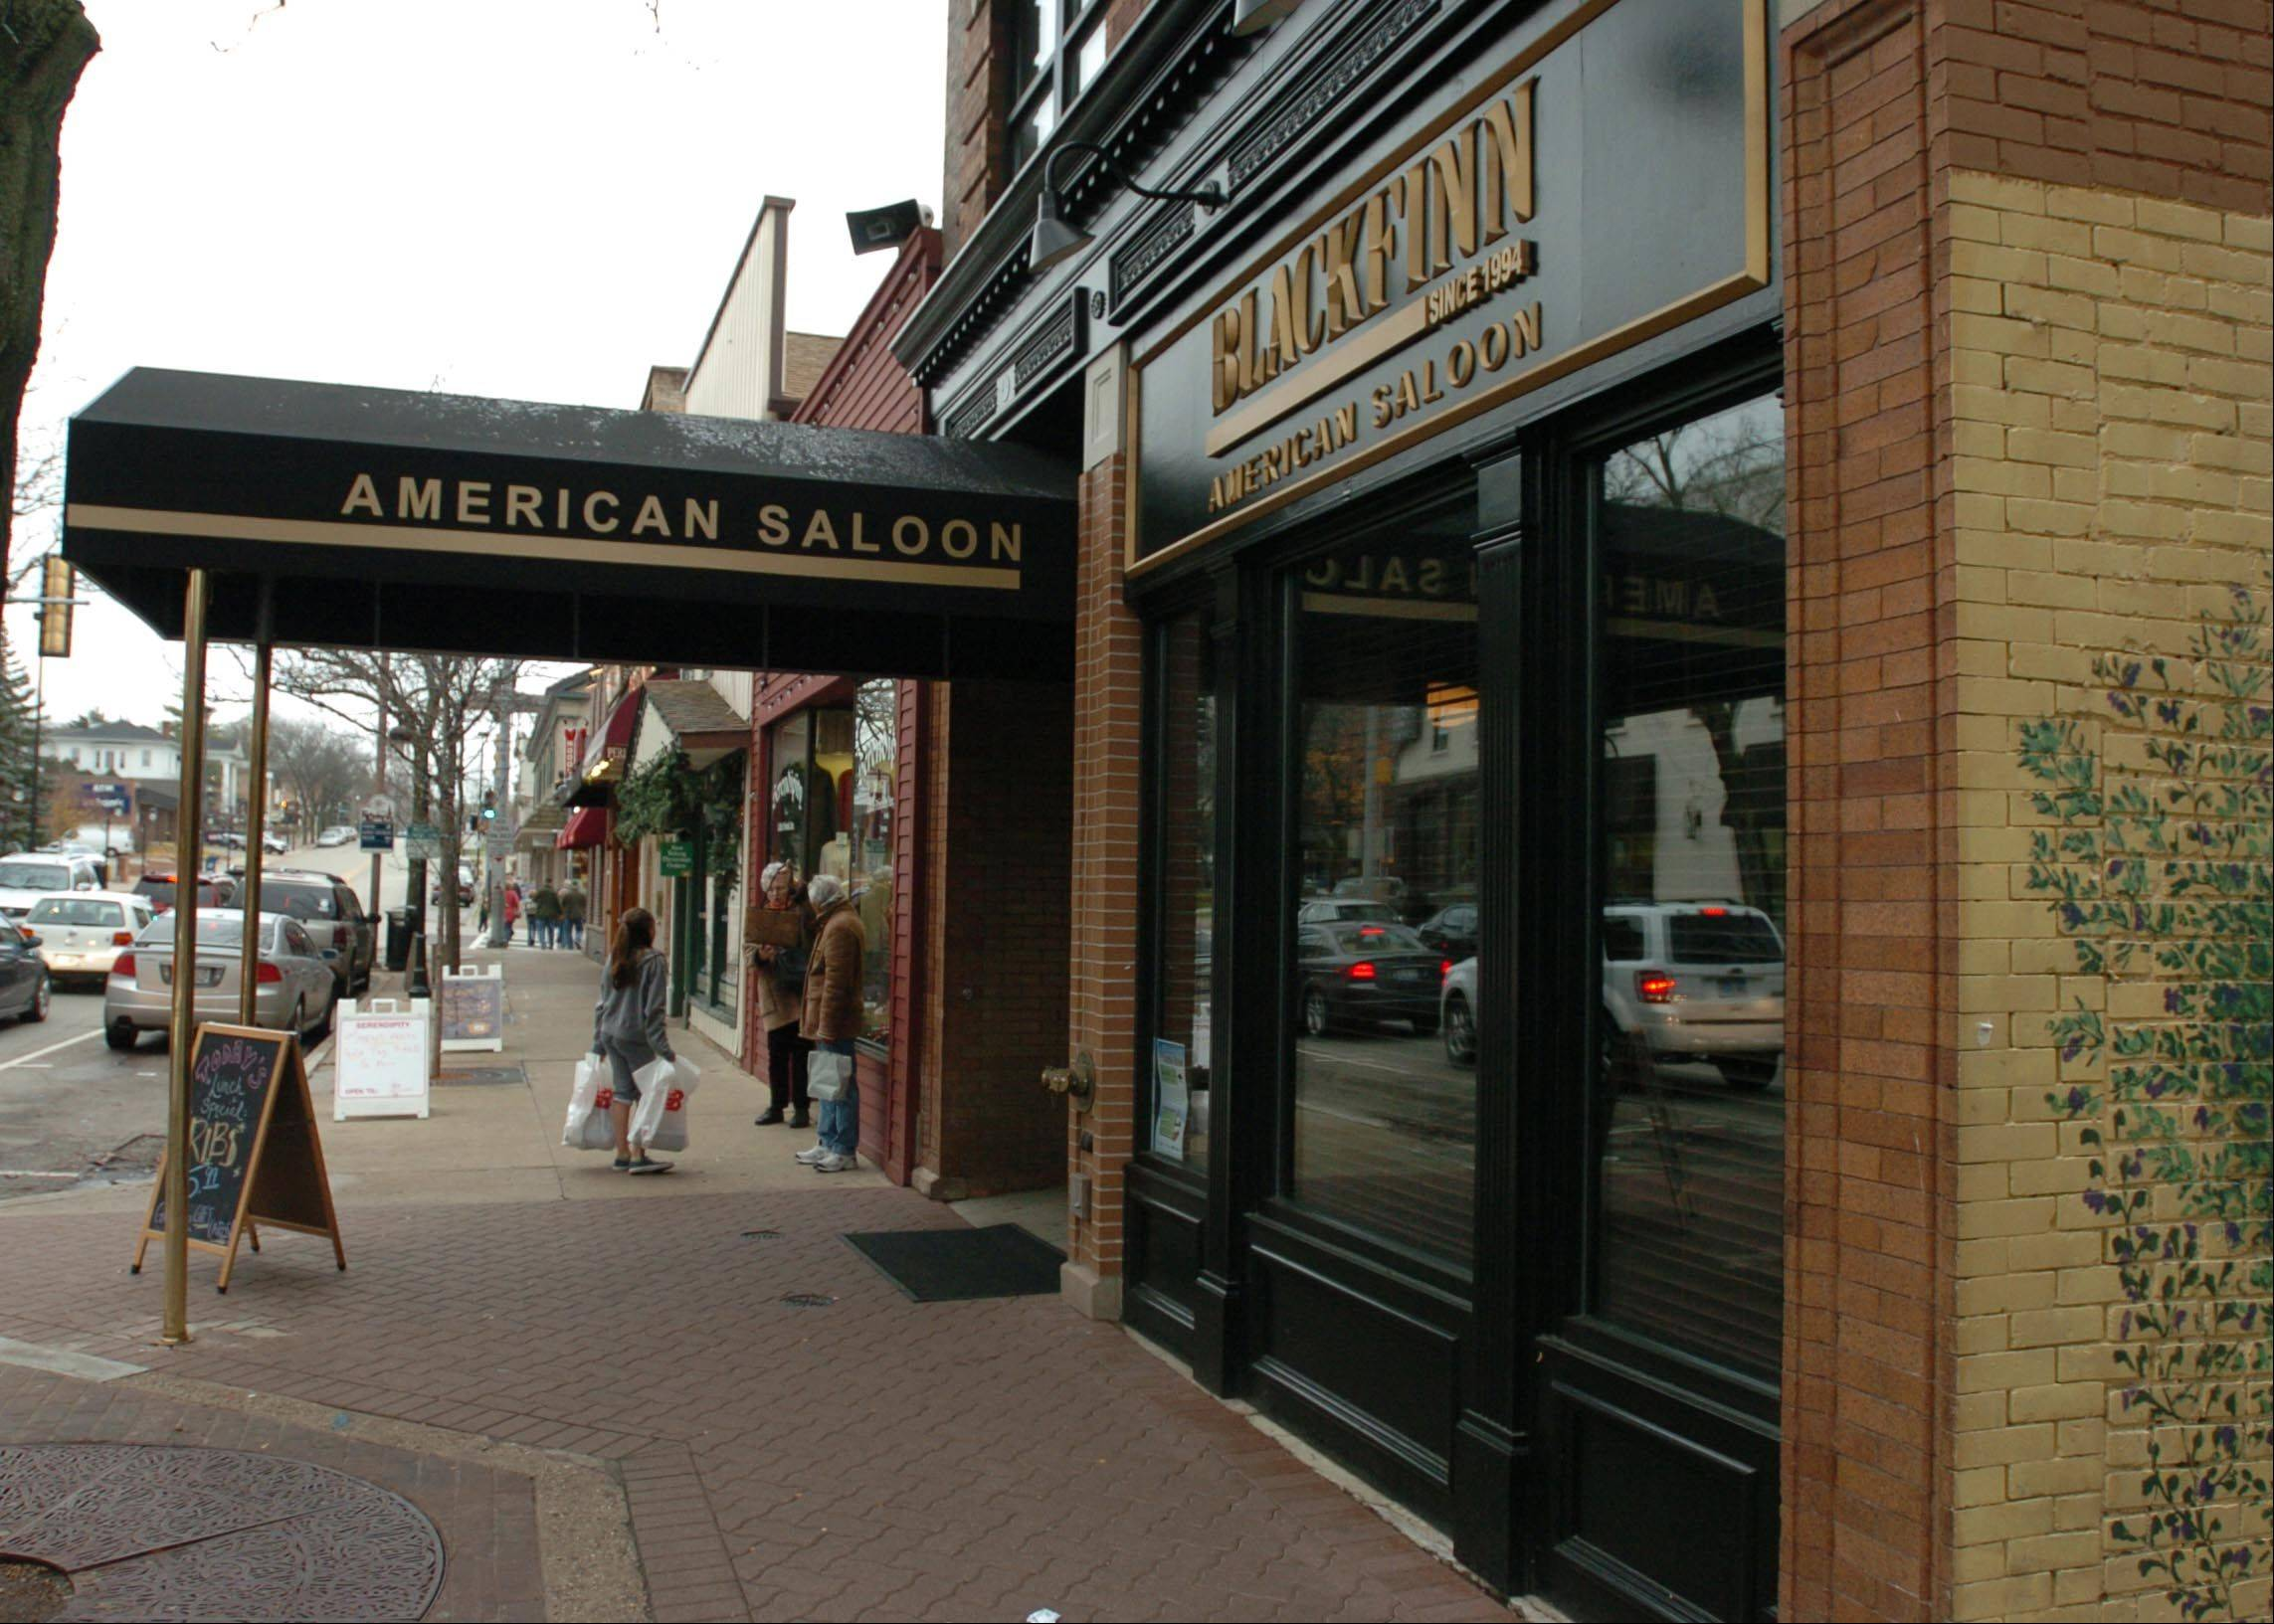 BlackFinn American Saloon in Naperville normally stays open to 1 a.m. Friday nights and 2 a.m. on weekends, but its liquor license has been suspended after a two-week investigation and it will close at 11 tonight.